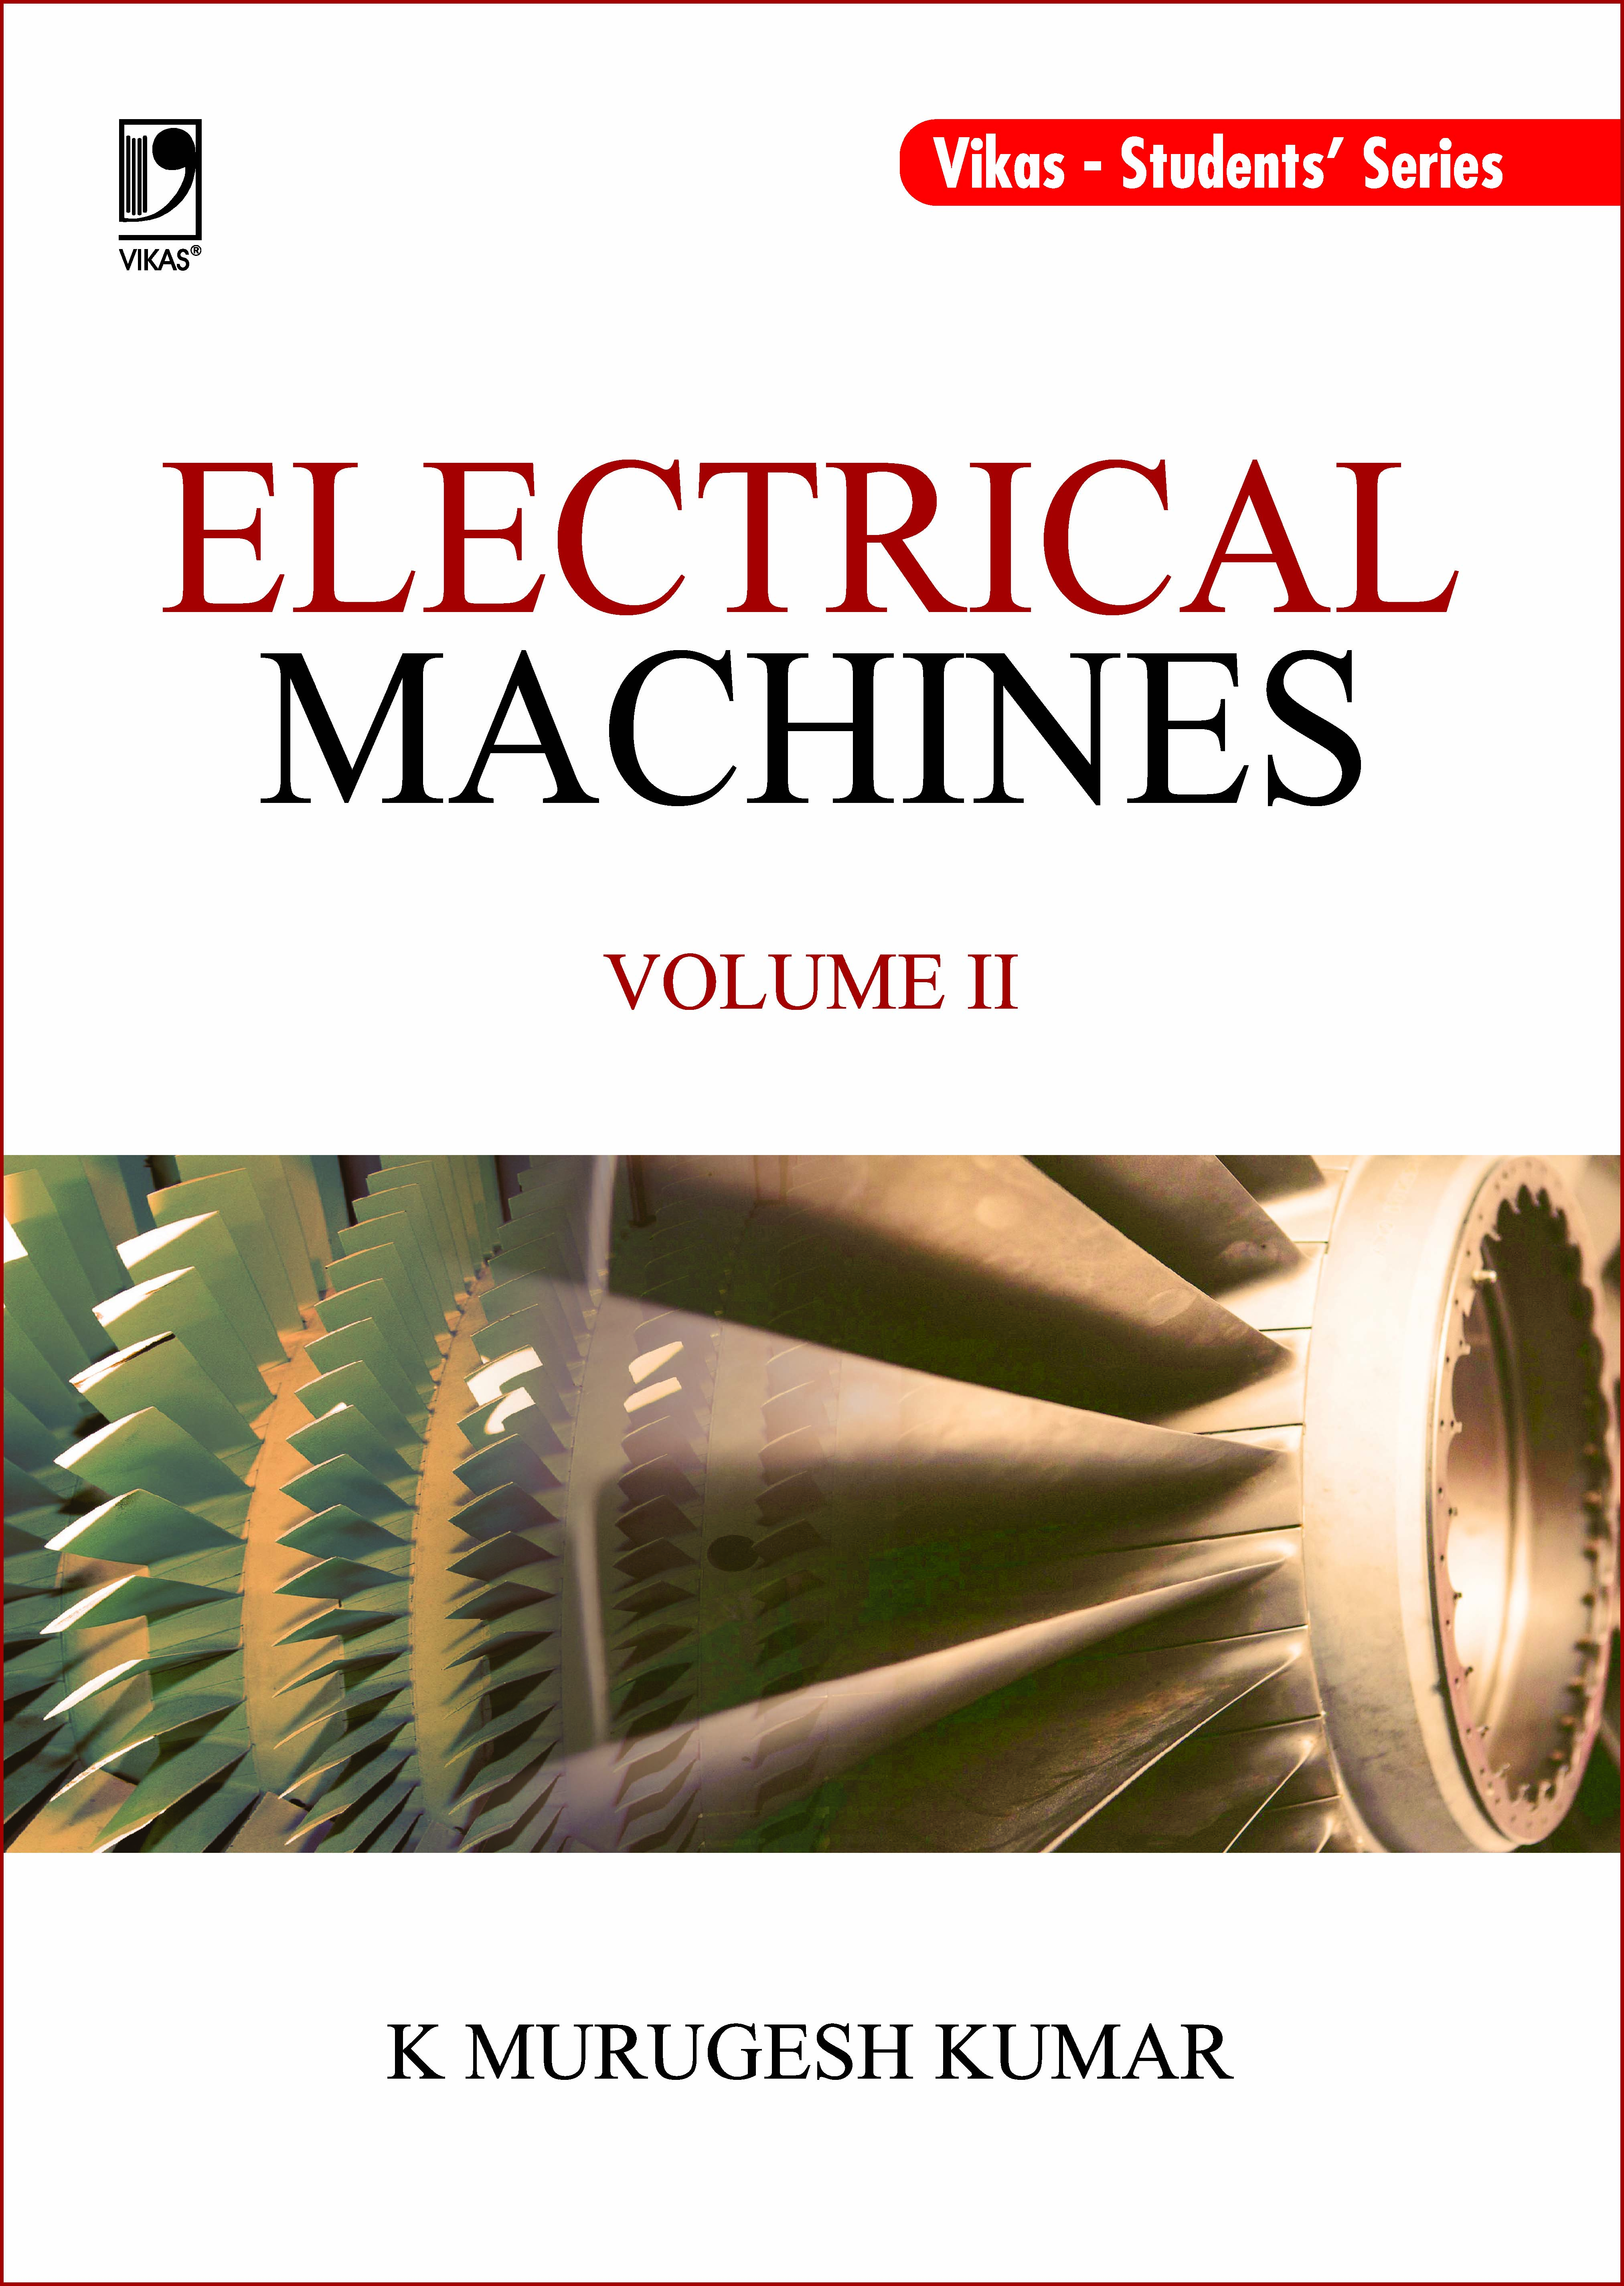 Electrical Machines Volume II (For ANNA University)